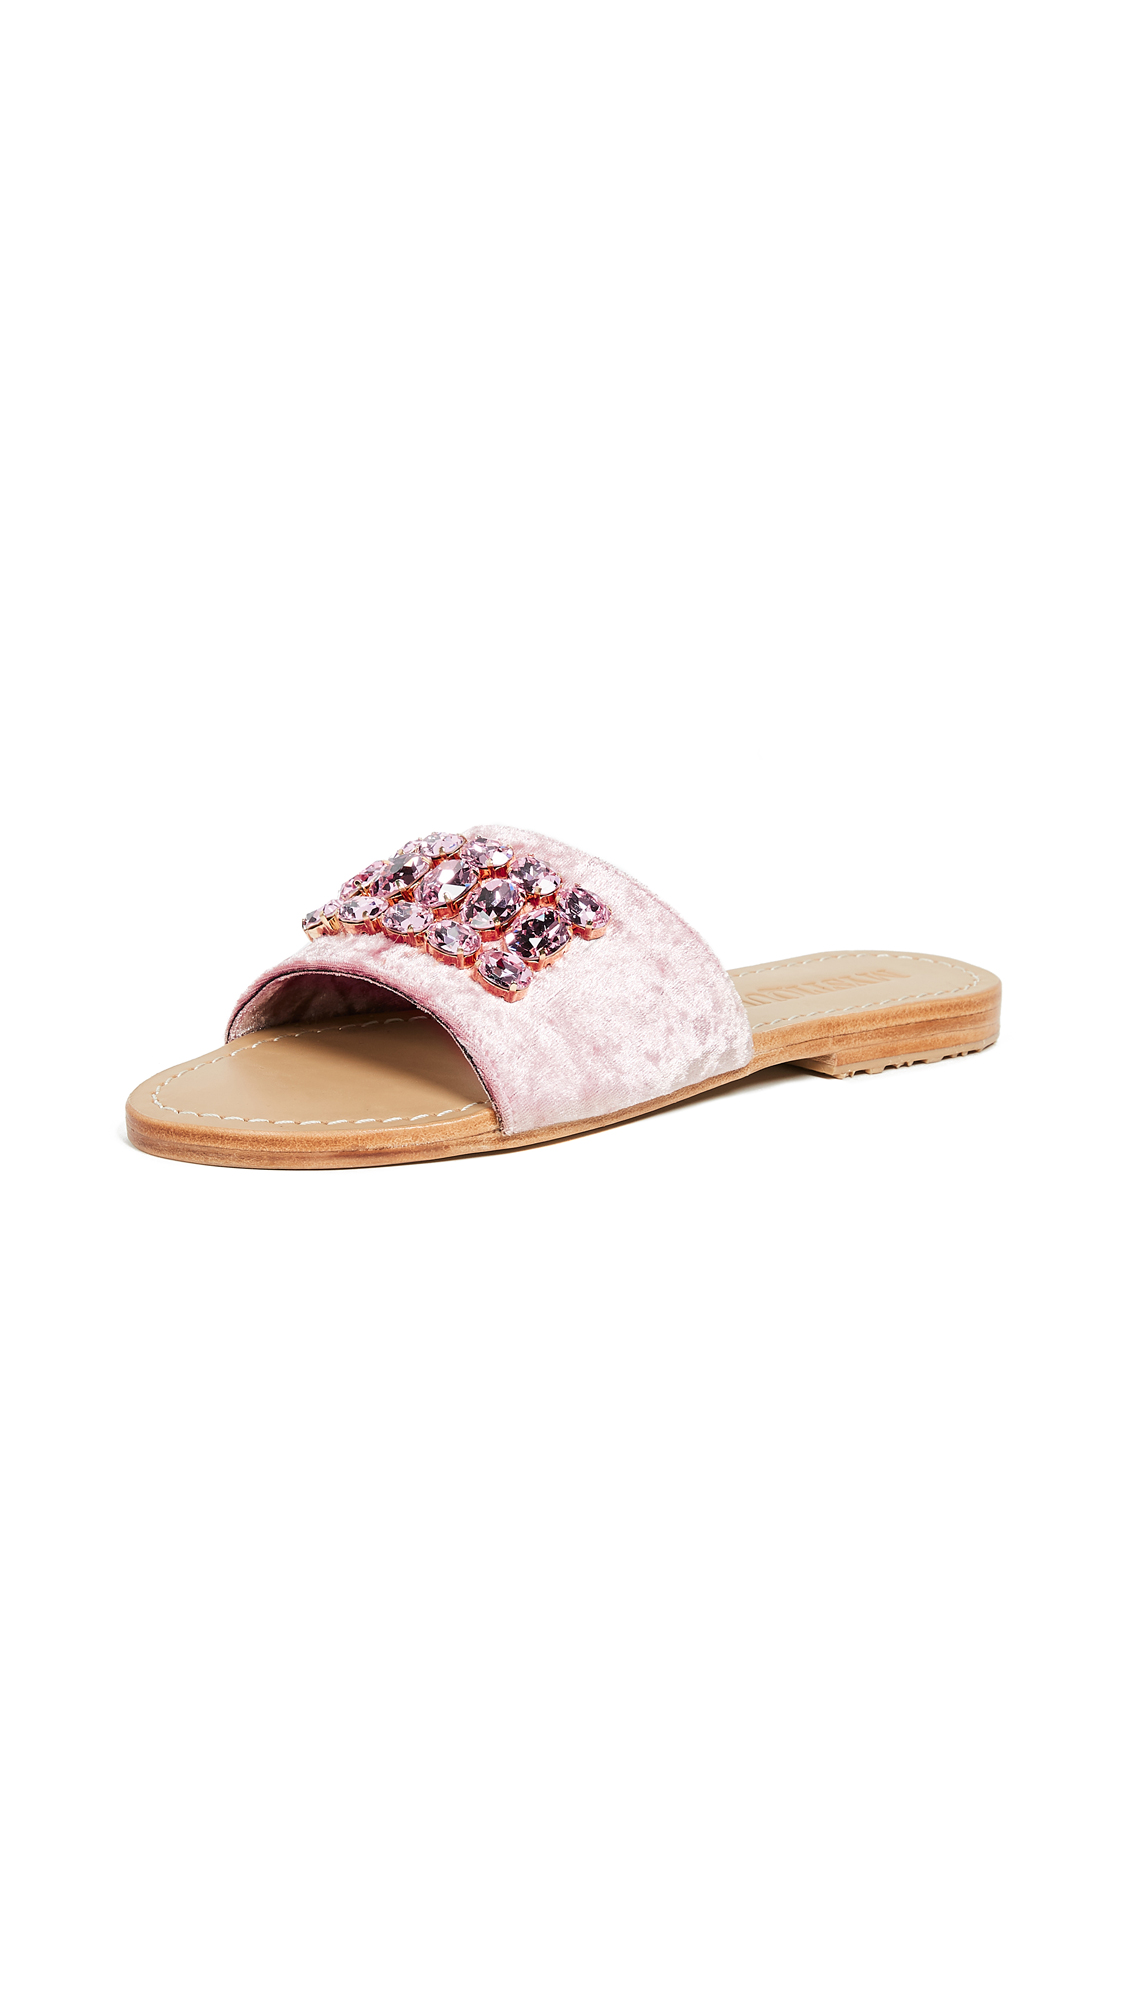 Mystique Jewel Slides - Pink